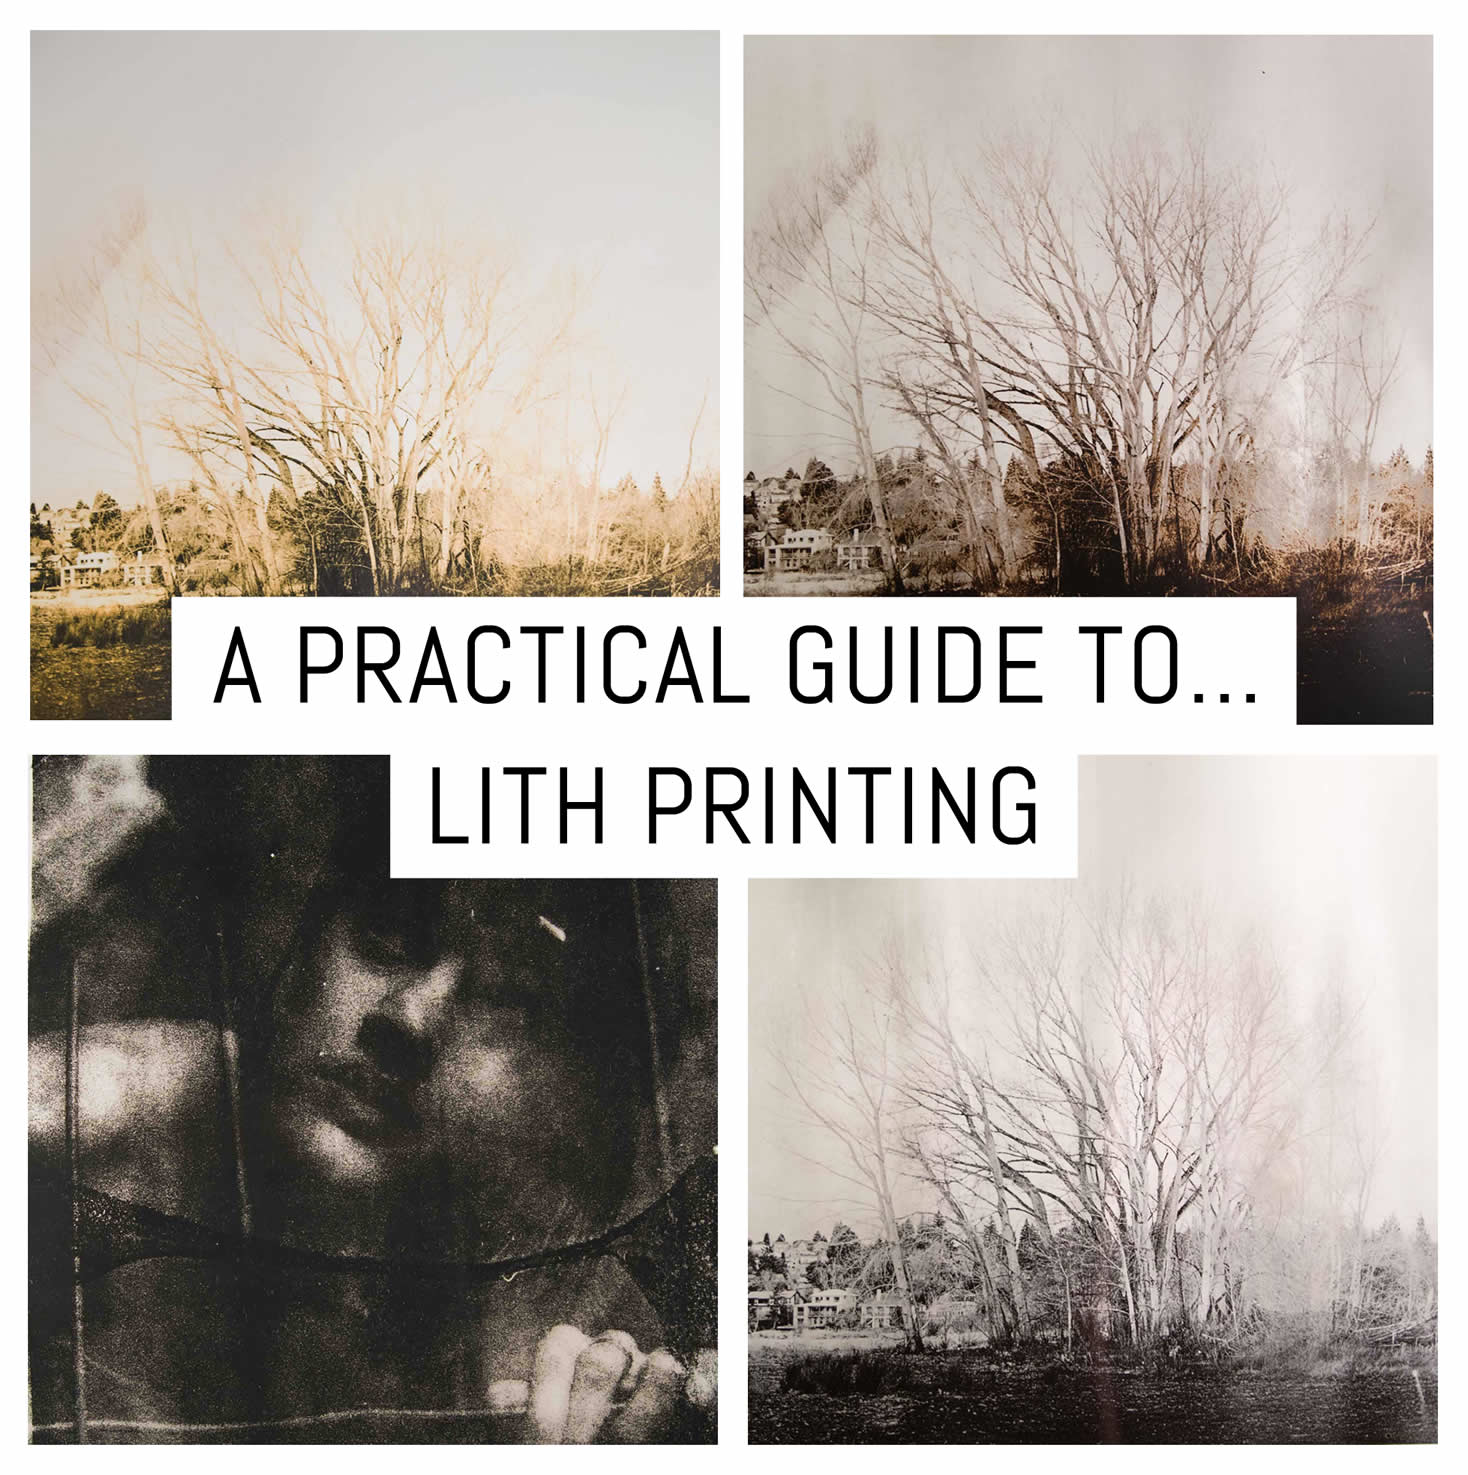 A practical guide to… Lith printing